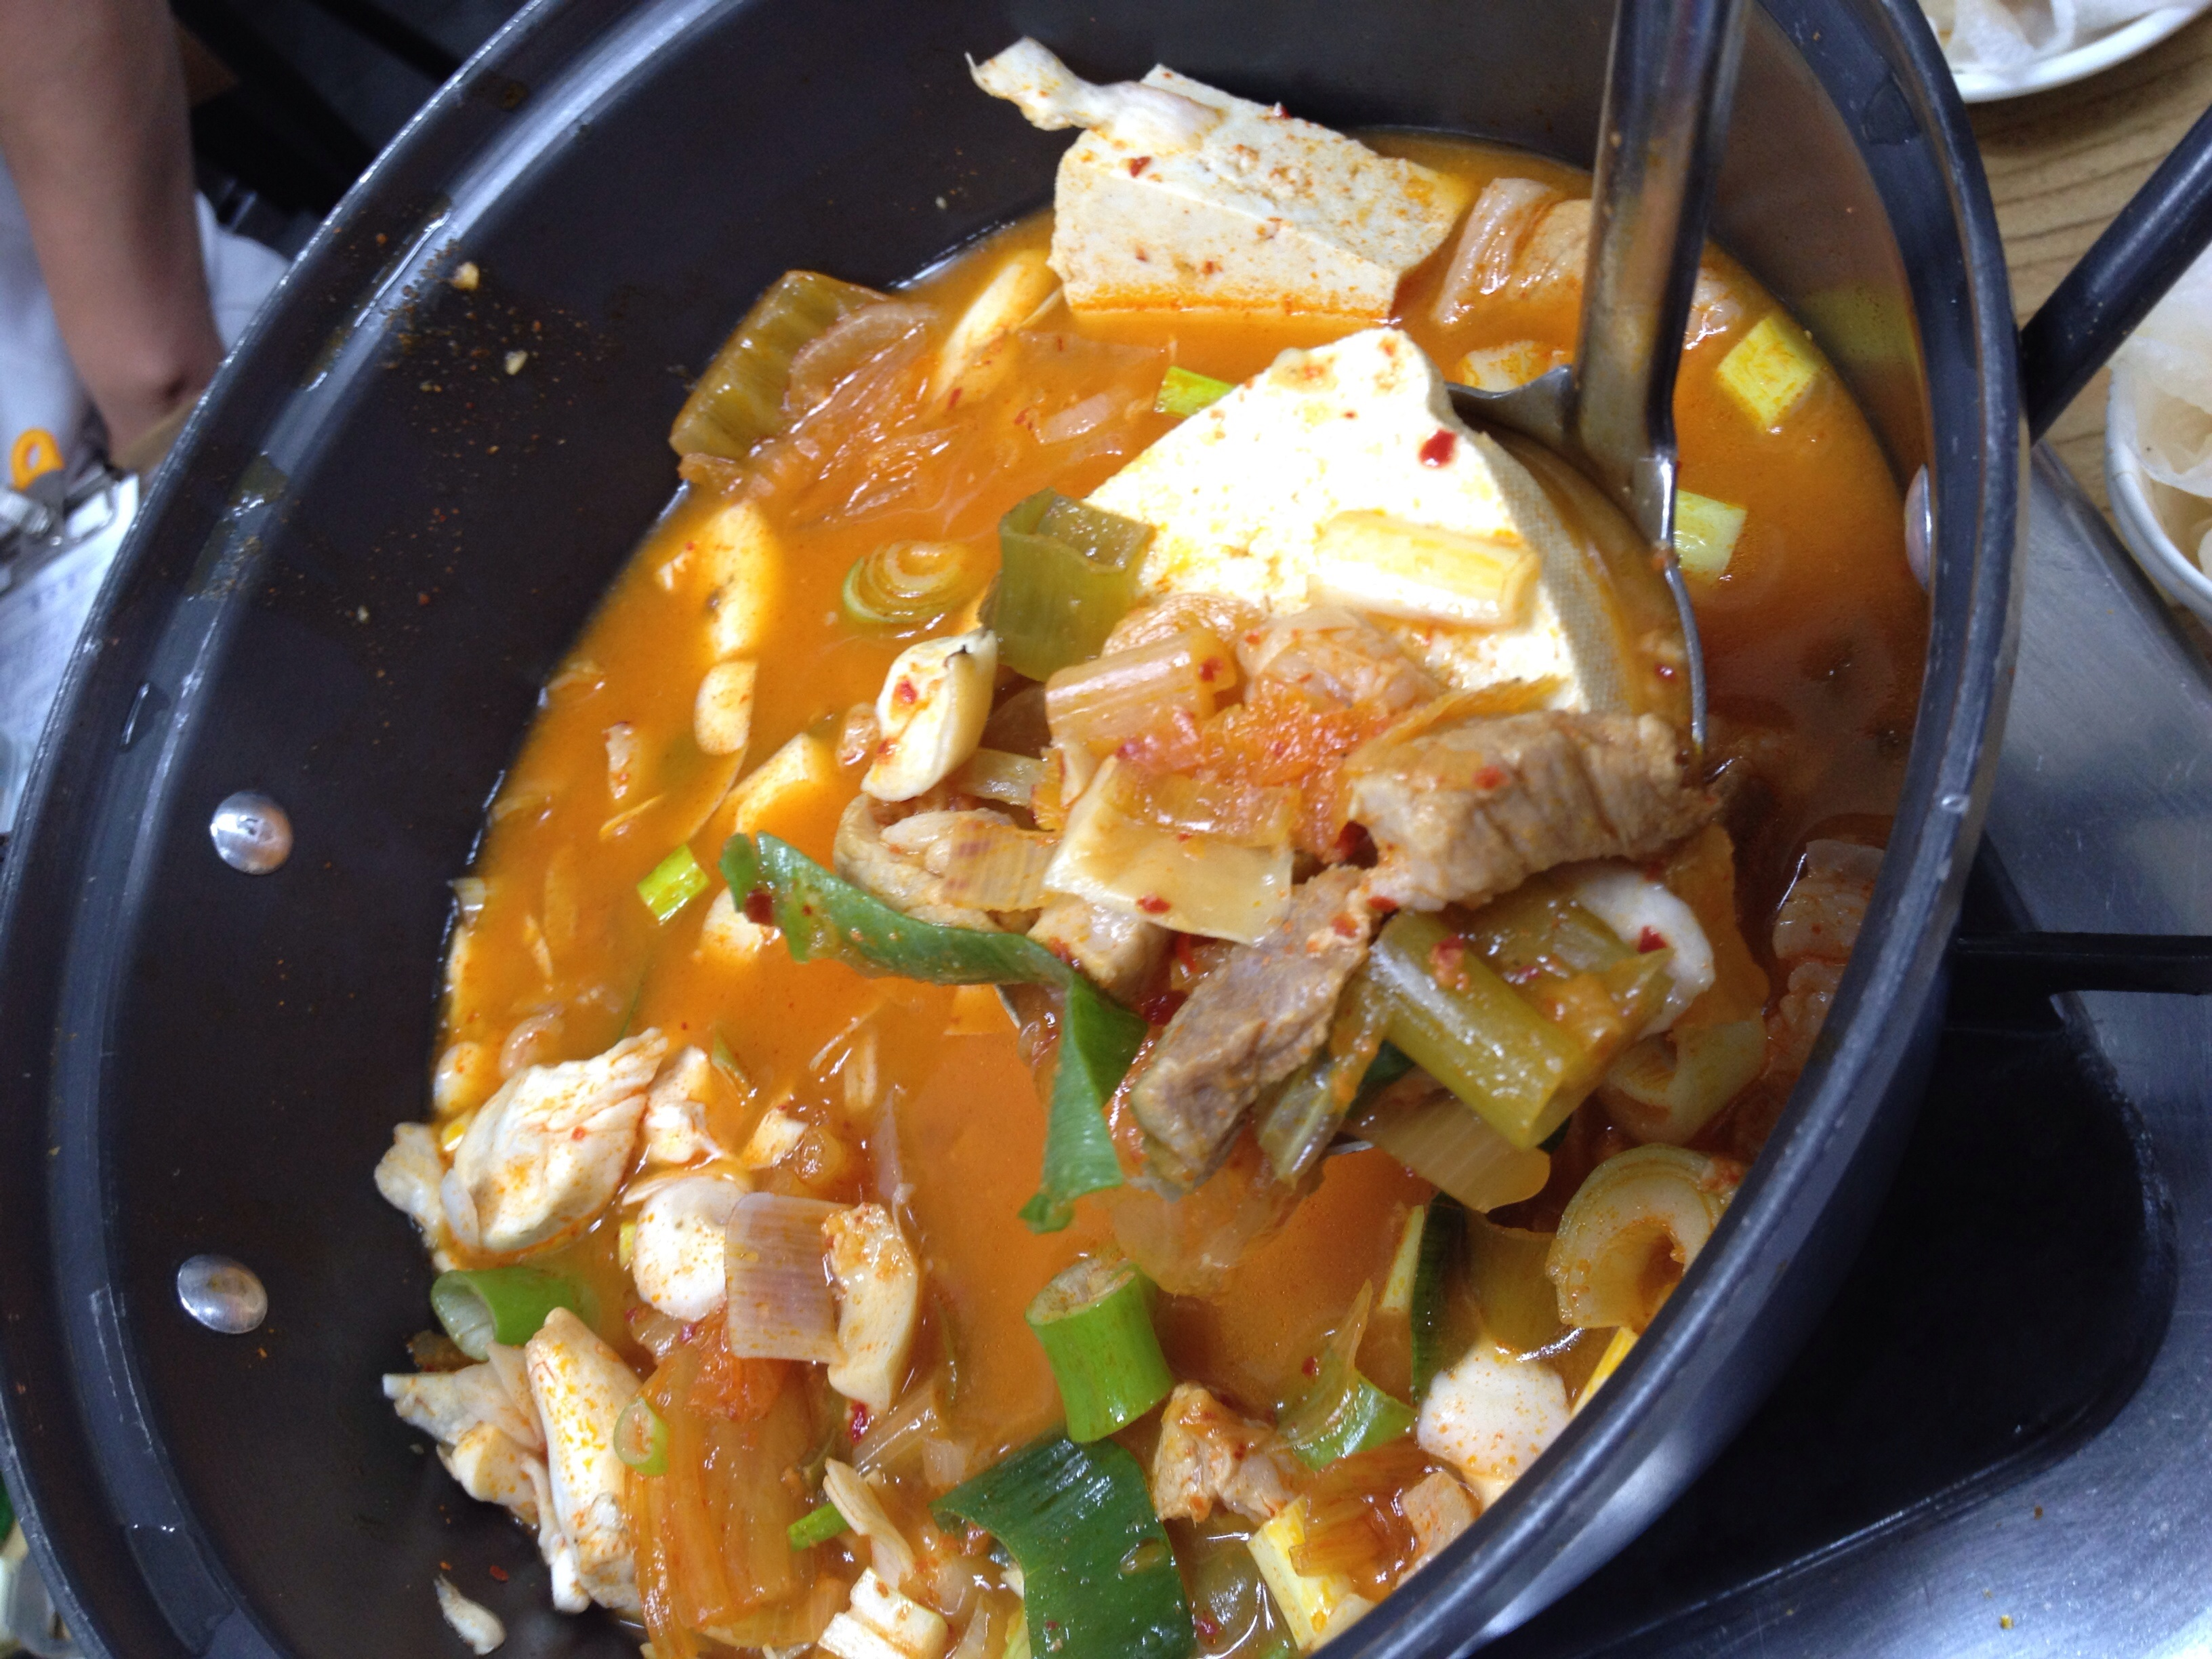 Reason #2 - Here, the stew is very generous with the ratio of meat to kimchi to soup! Kimchi jiggae is a classic Korean stew with a spicy soup base made with red chill pepper paste, kimchi, meat or tuna fish, tofu, onions and green onions. Delicious!